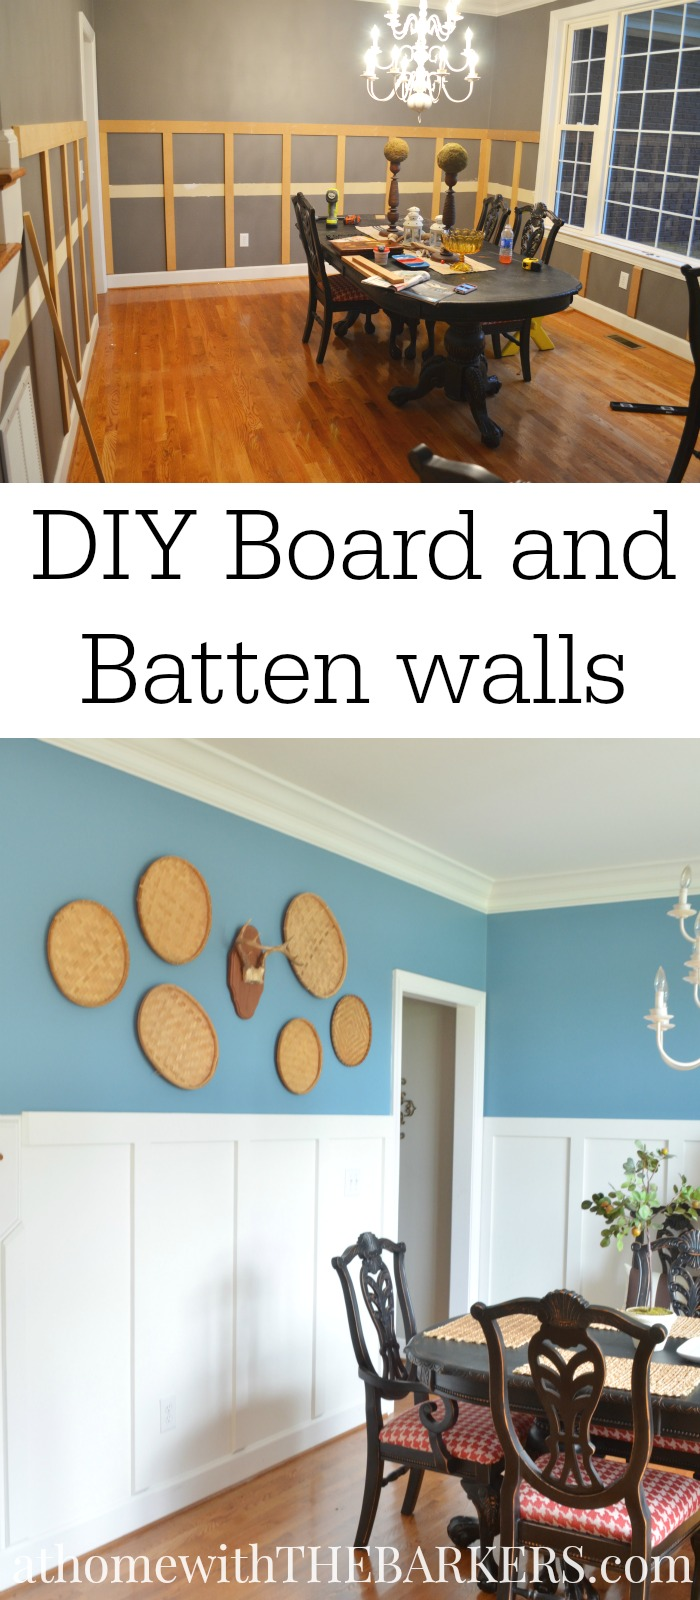 DIY-Board-Batten-walls